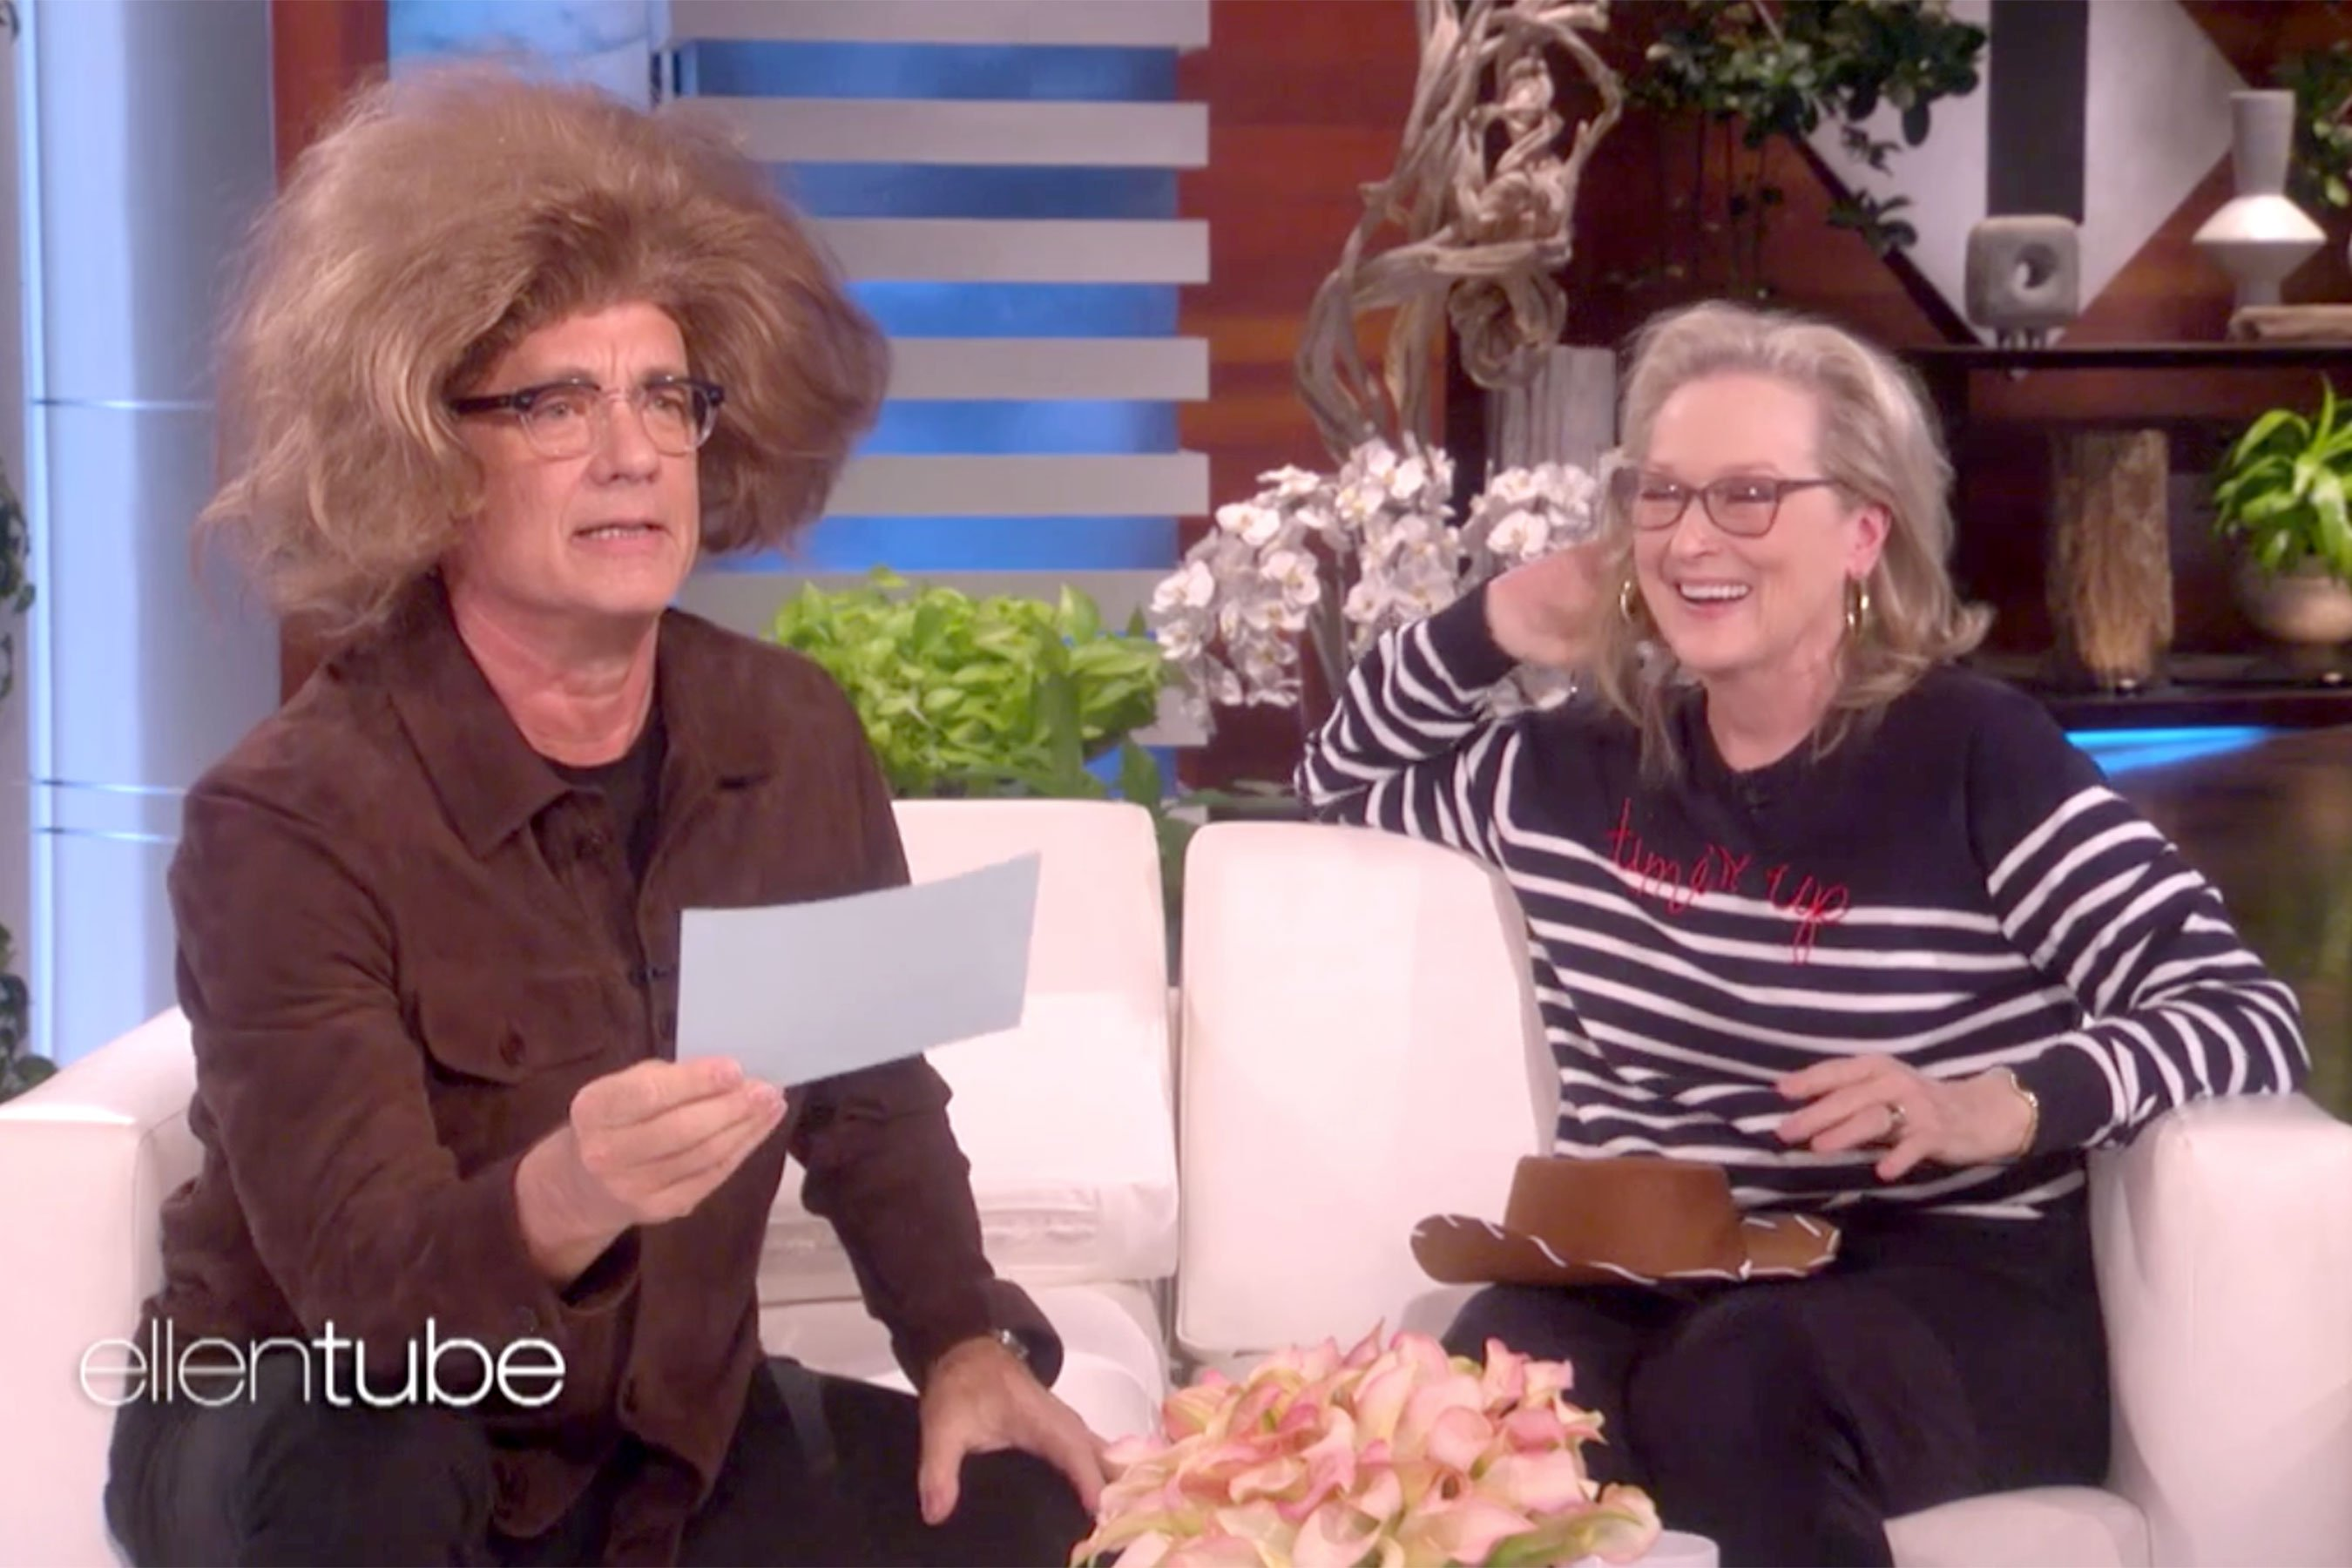 Meryl Streep, Tom Hanks act each other's iconic roles